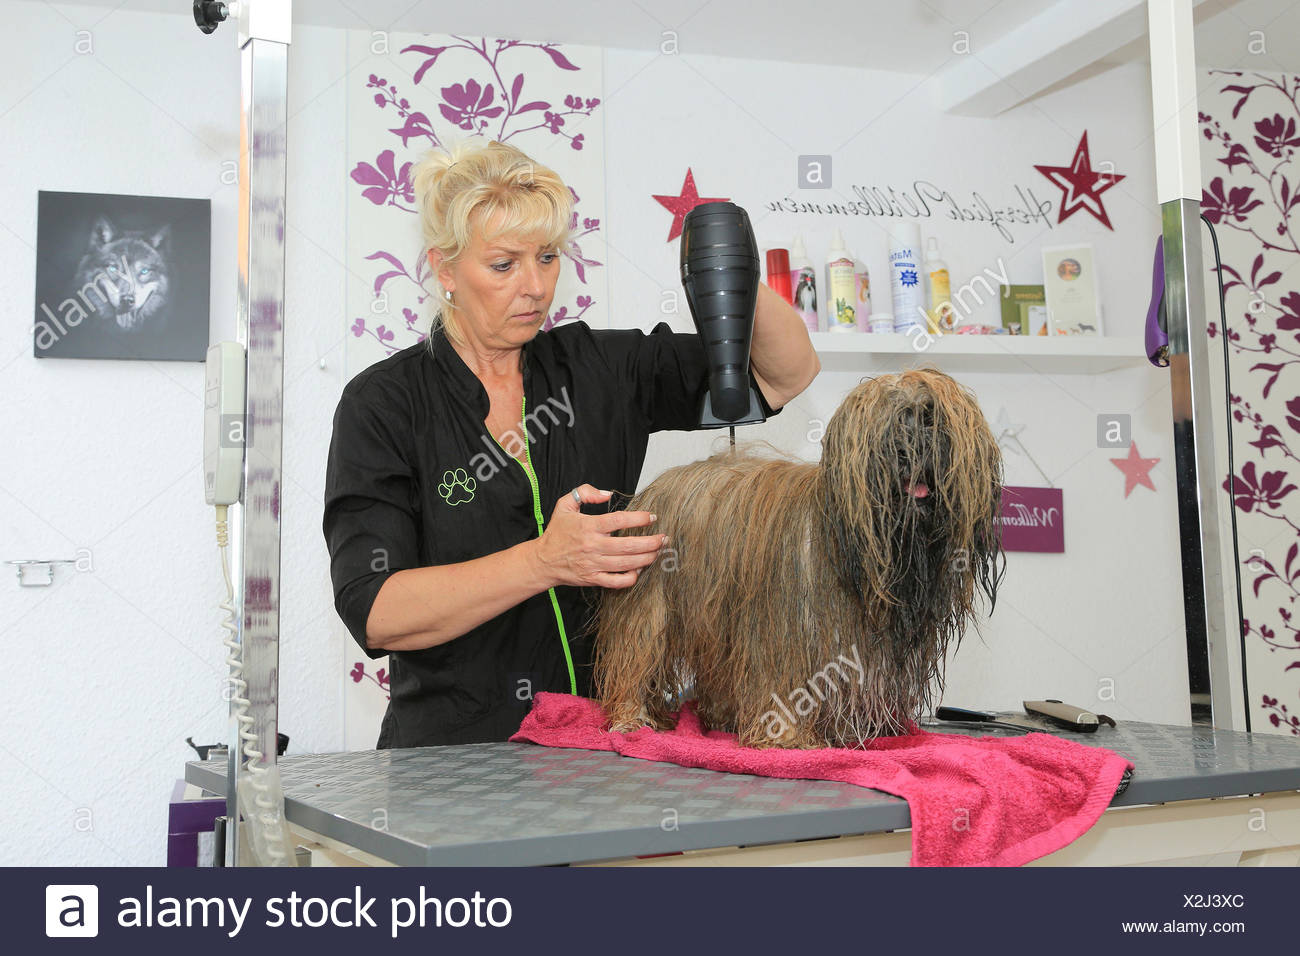 Lhasa Apso at dog groomer: Drying with a hand dryer. Germany - Stock Image